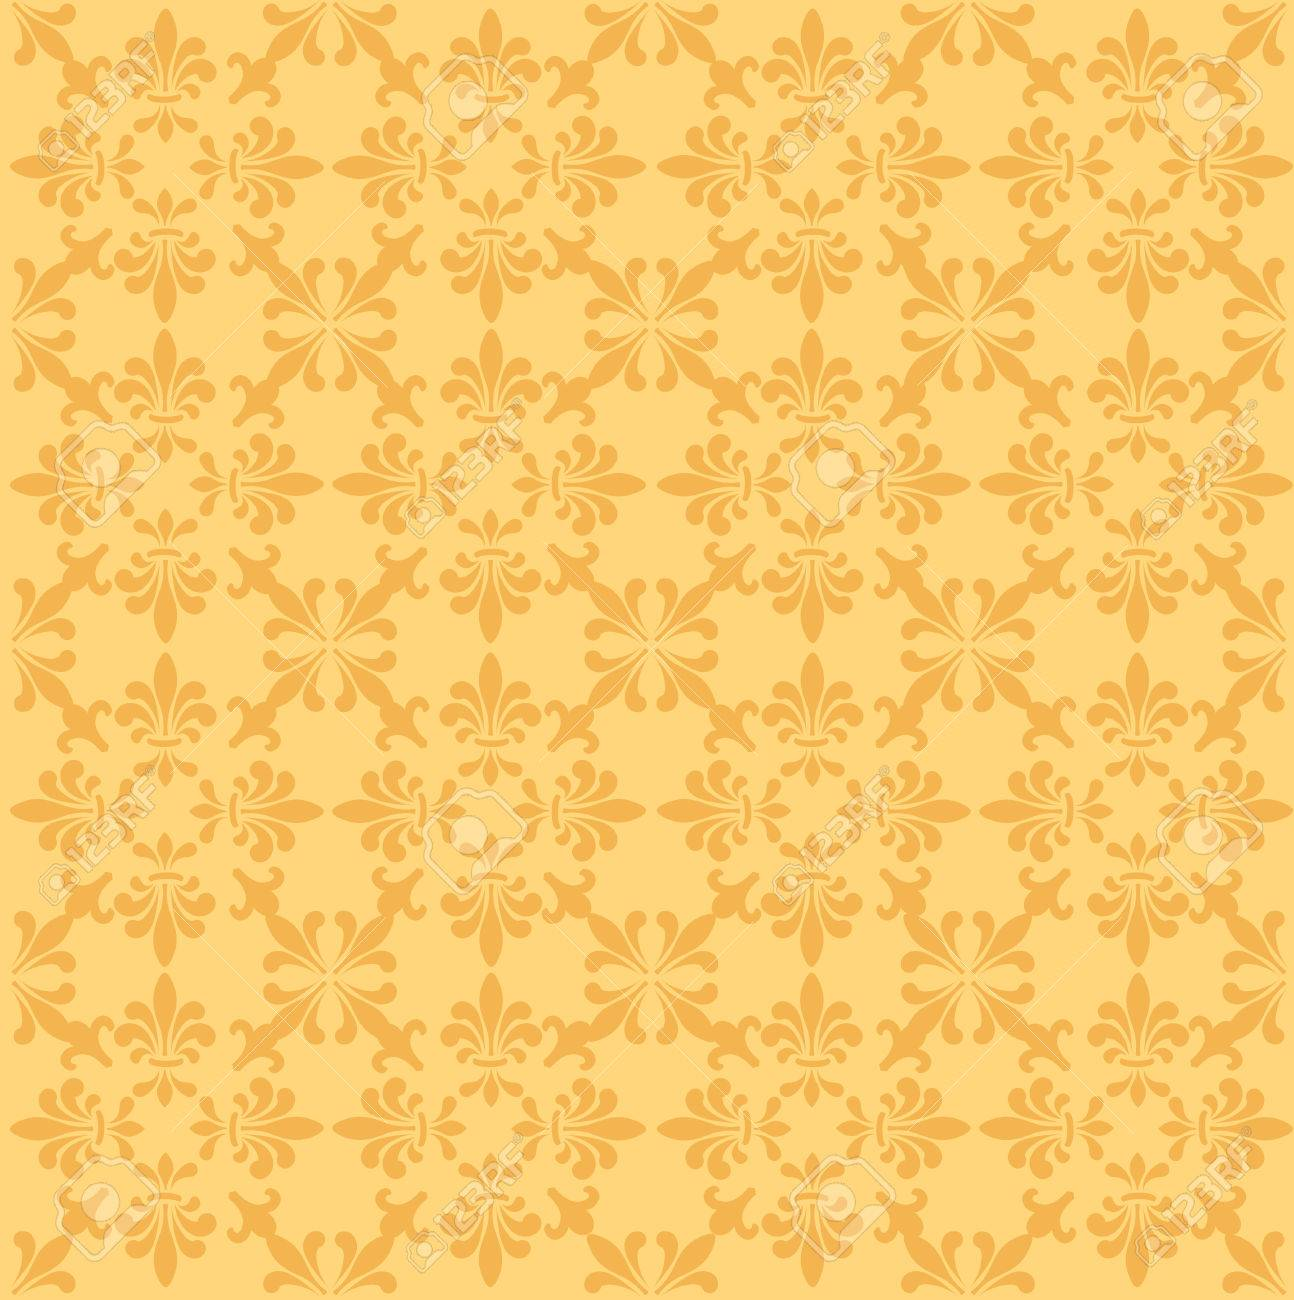 golden floral damask seamless pattern for invitation card backgrounds stock vector 38910485